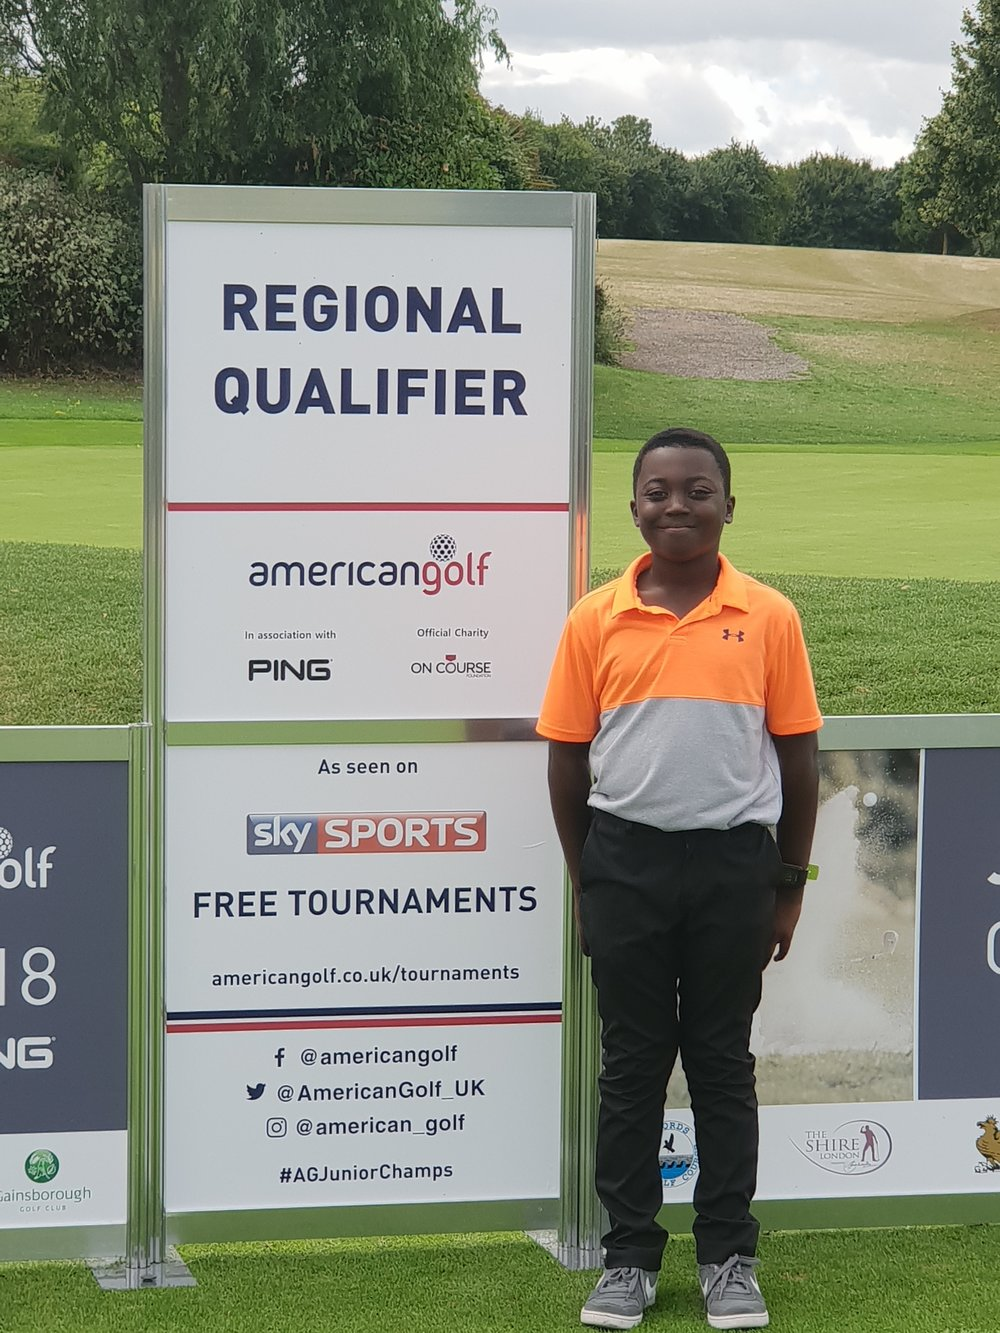 2018 'Winner' Regional Qualifier 'Future Stars' 7-8 age group Junior Regional Championships American Golf - Gaudet Luce GC